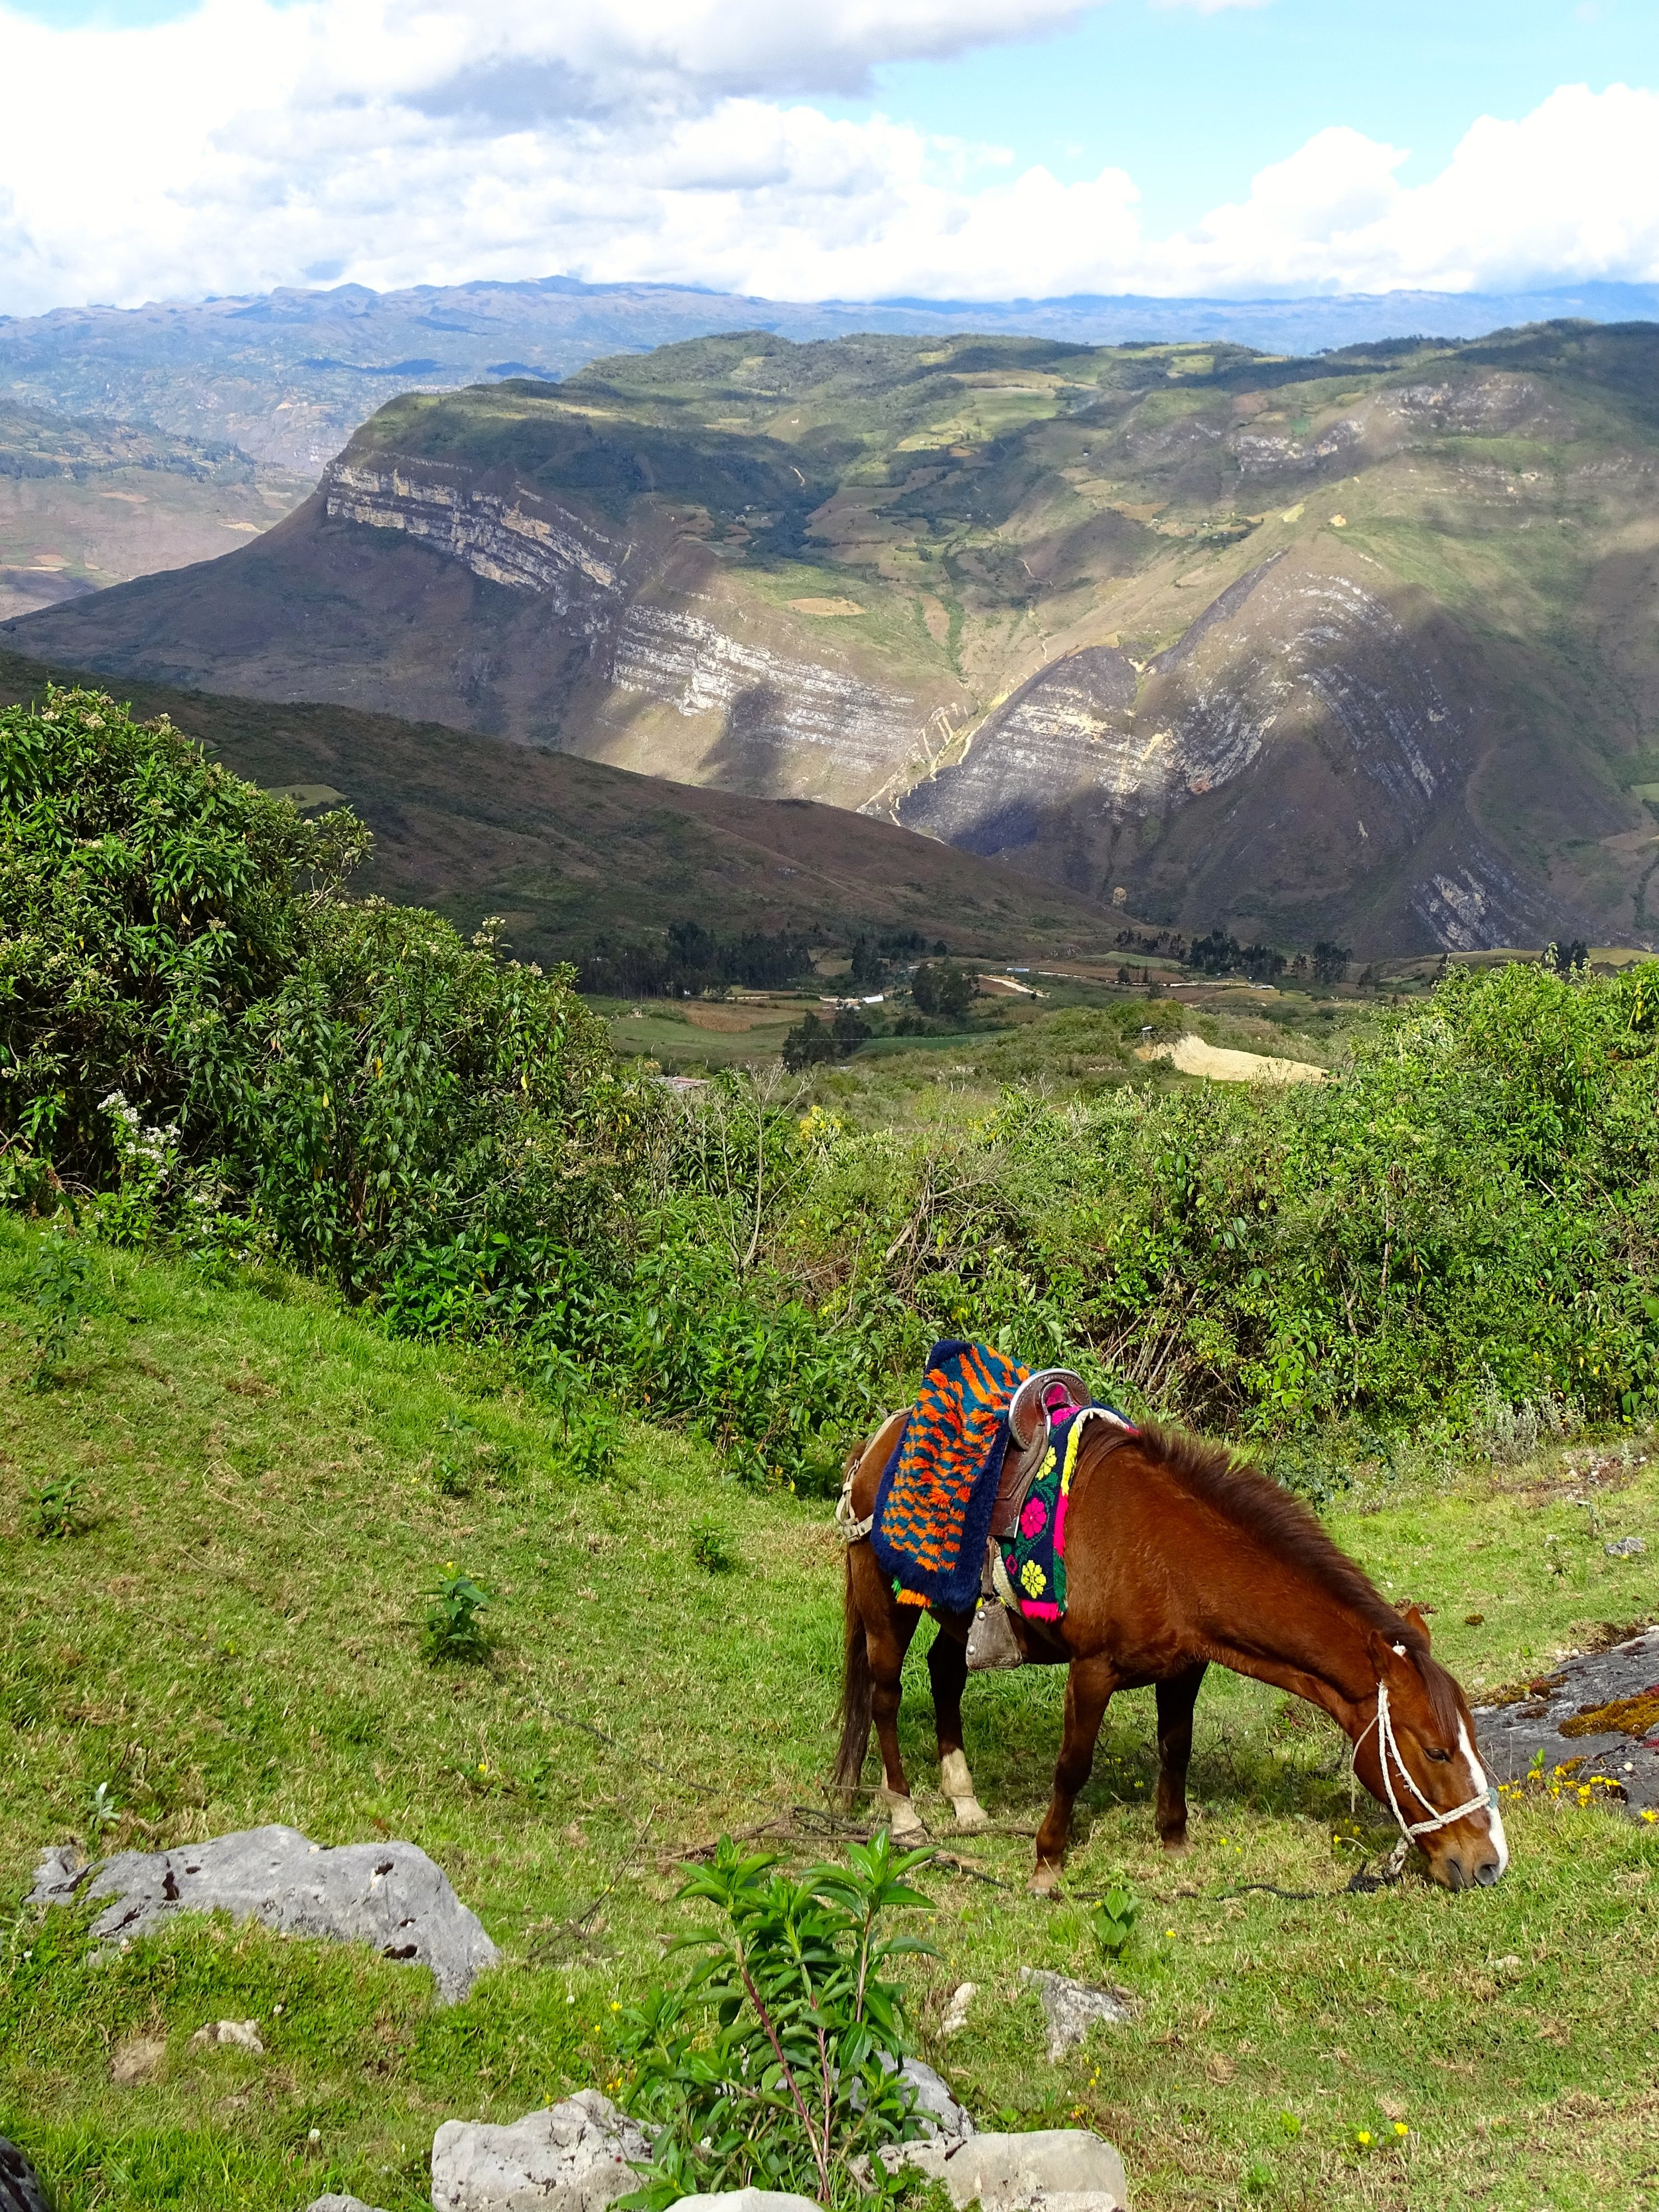 I loved the saddle and blanket on this horse.  Where was he when it was time to hike back down?